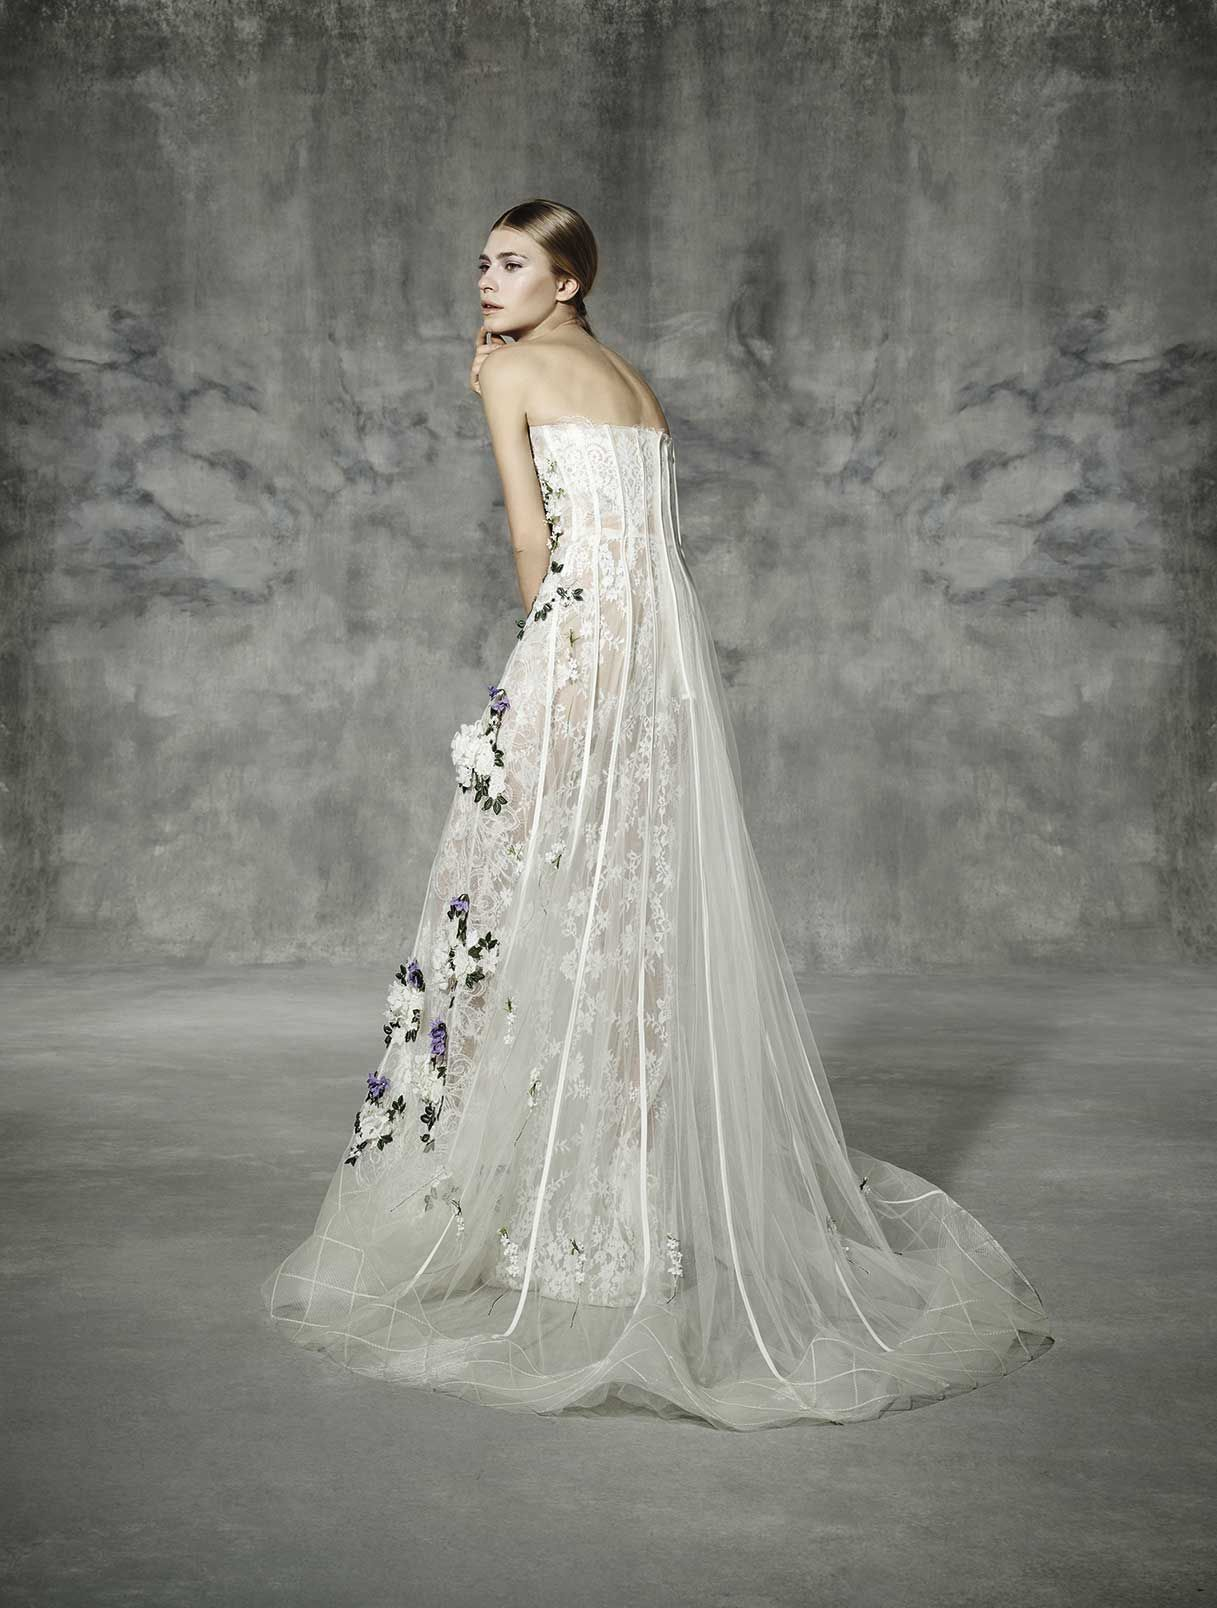 ROURE By Yolan Cris Strapless Wedding Dress Made Hand With A Lovely Mixing